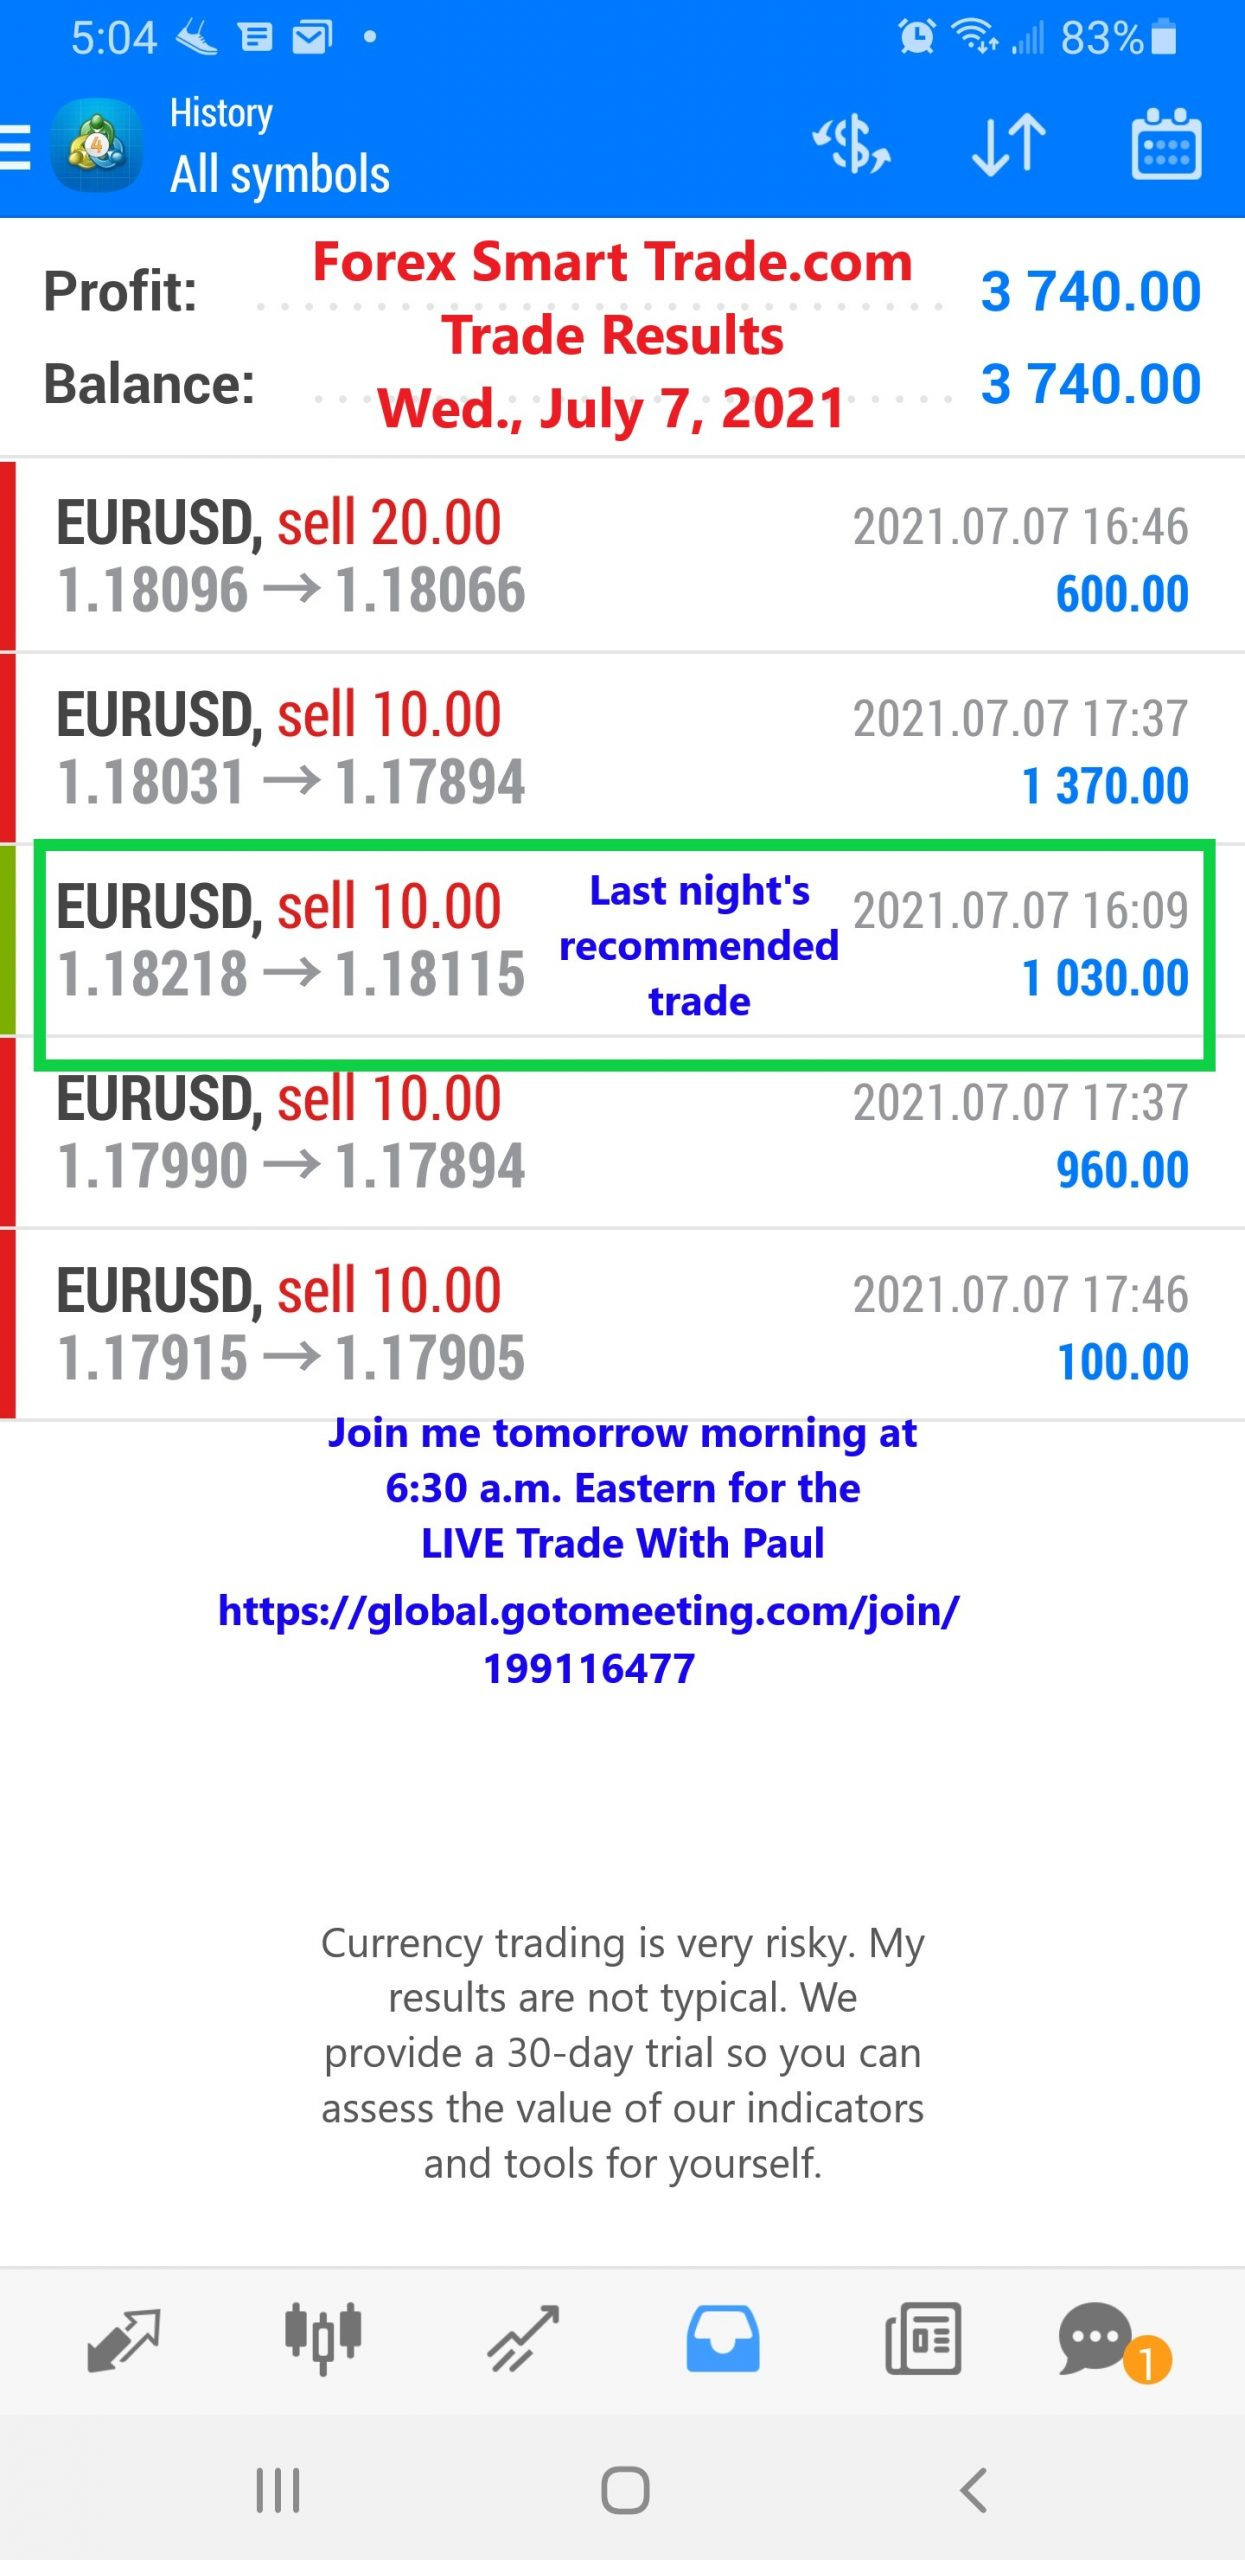 Forex Smart Trade Daily Trade Results